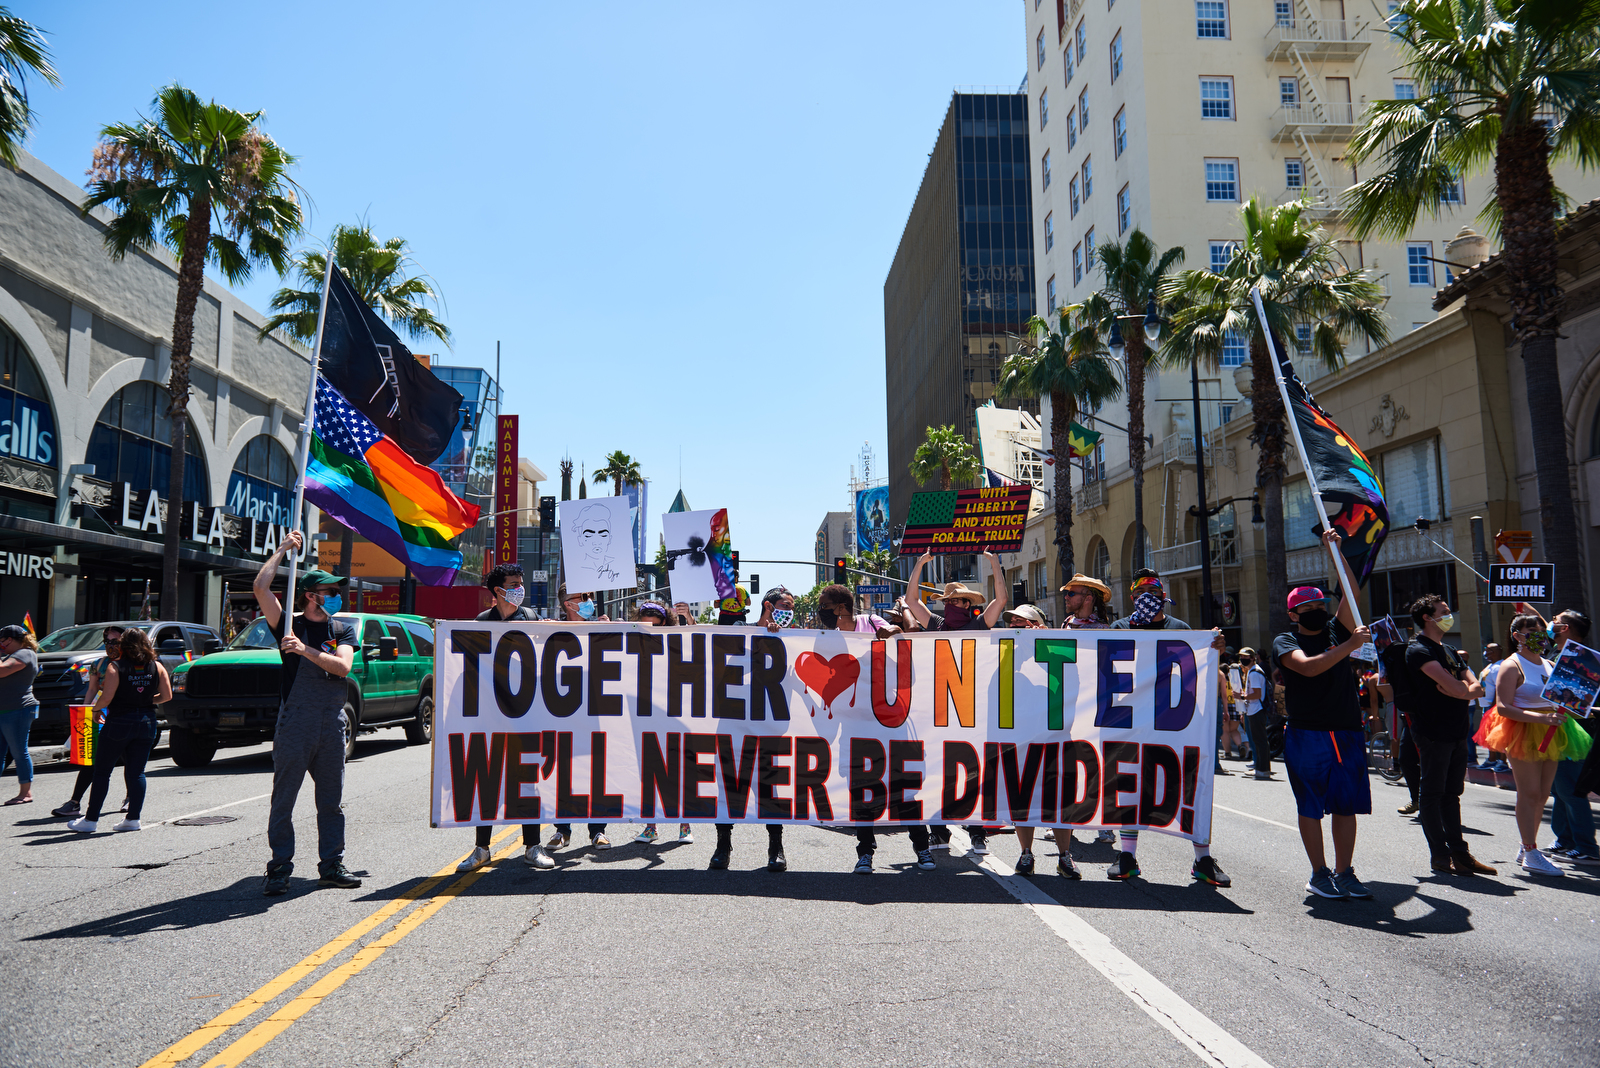 Scenes from the All Black Lives Matter Pride Parade in Los Angeles, California.